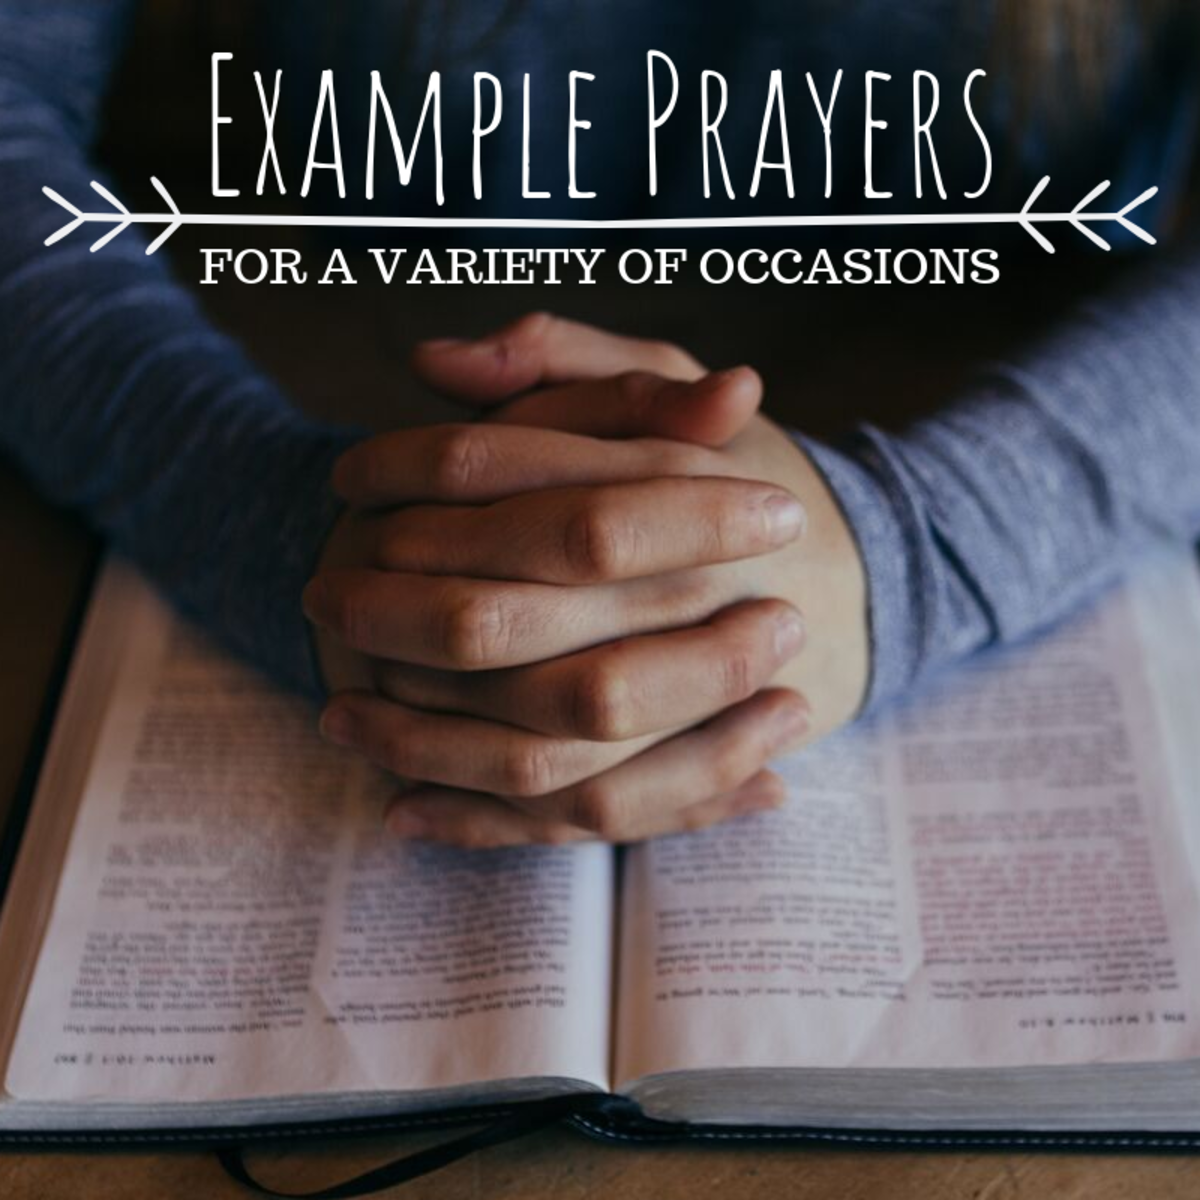 Examples of Prayers for Weddings, Funerals, Graduations, and Meals